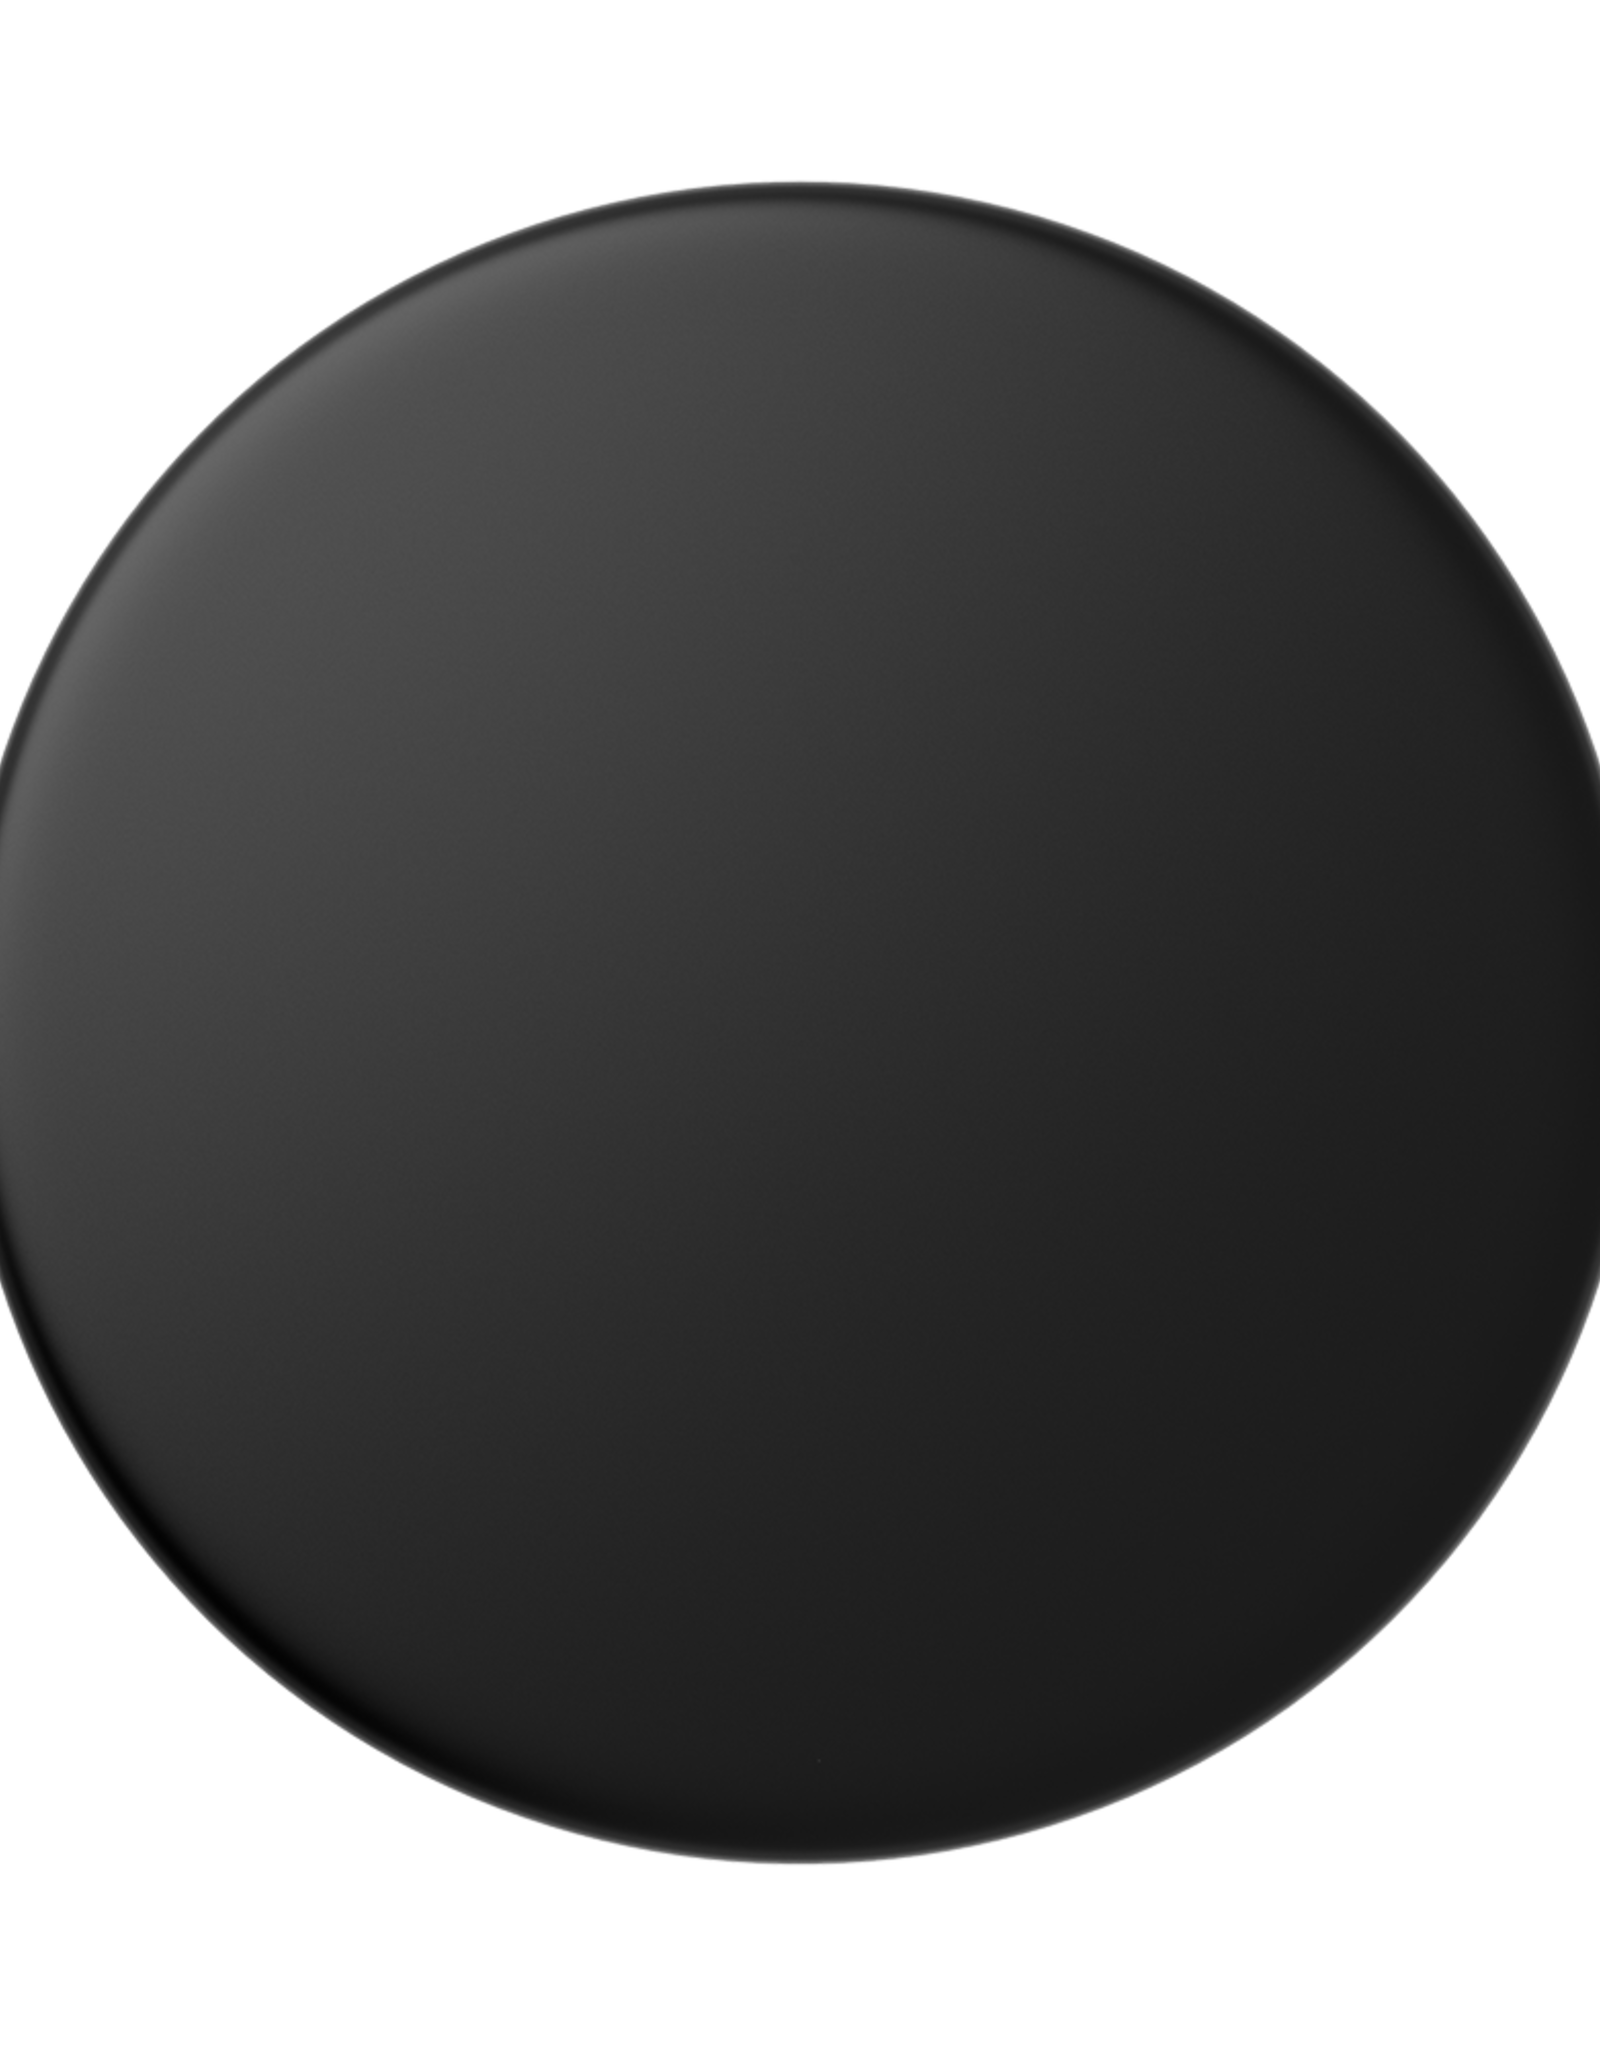 Popsockets PopSockets   PopGrip (Complete Swappable PopGrip) Aluminum Black 115-1863